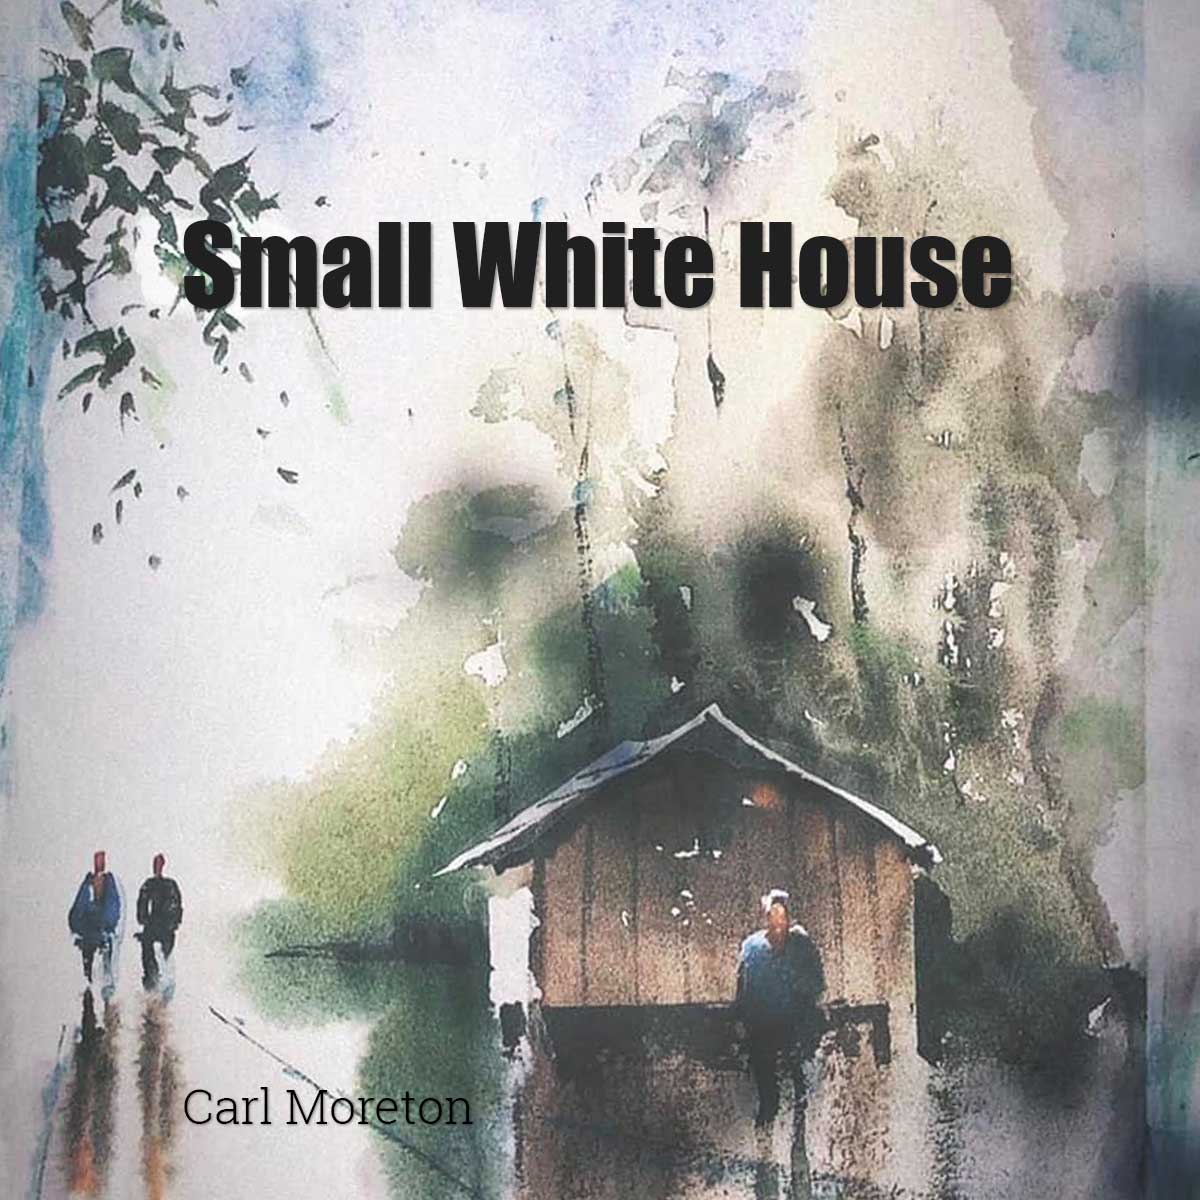 Carl Moreton Small White House Album Cover